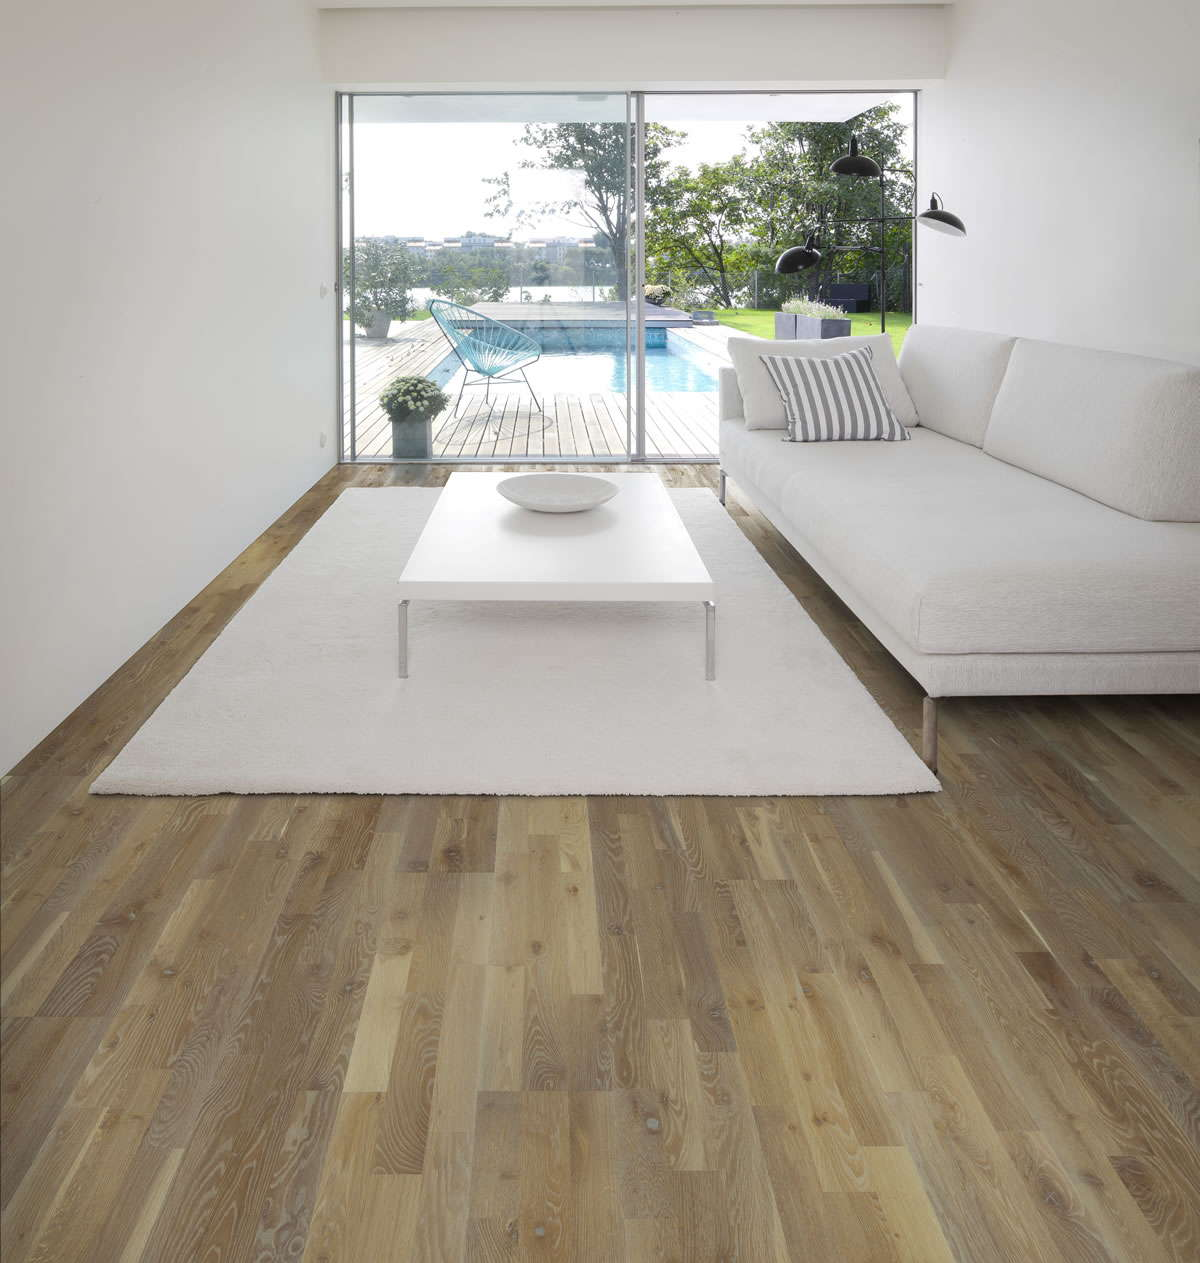 Kahrs oak stone engineered wood flooring for Kahrs flooring